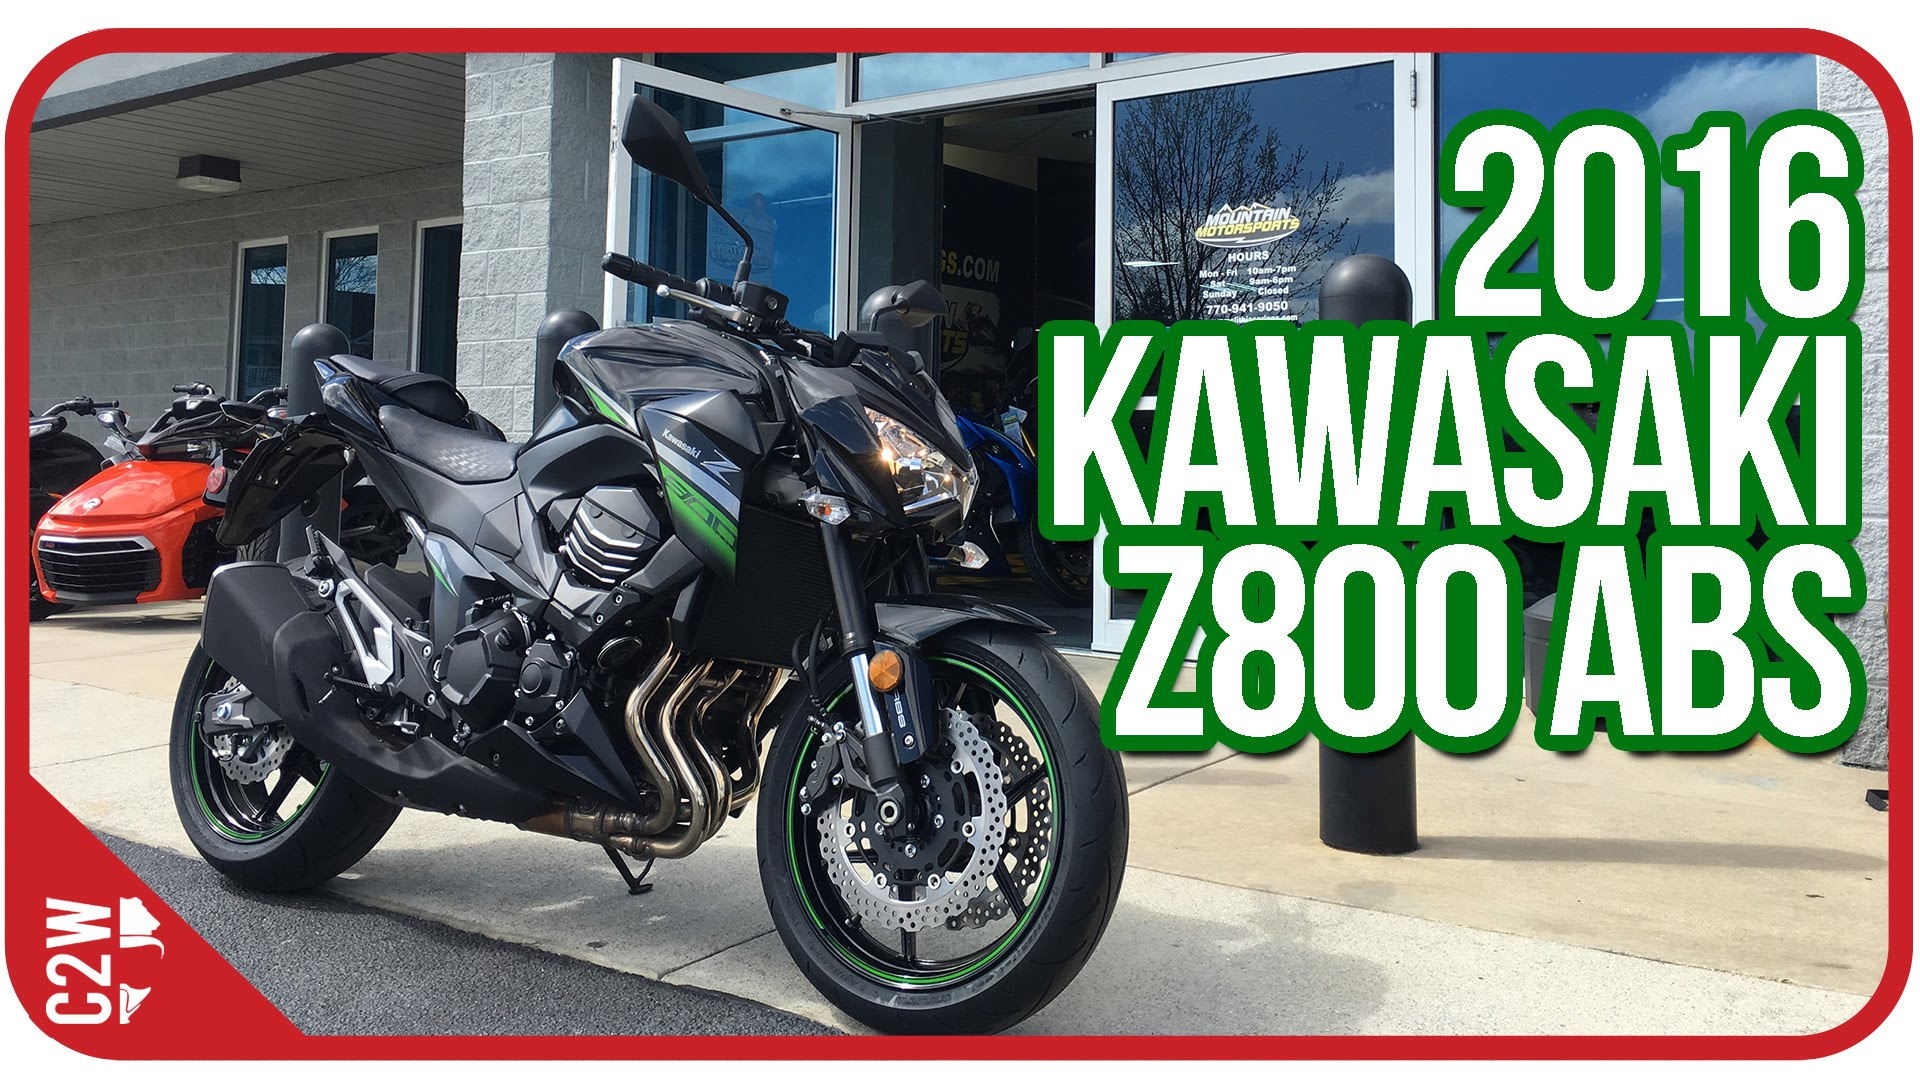 The Fierce New Kawasaki Z800 Abs Is An Epic Ride To Dominate The